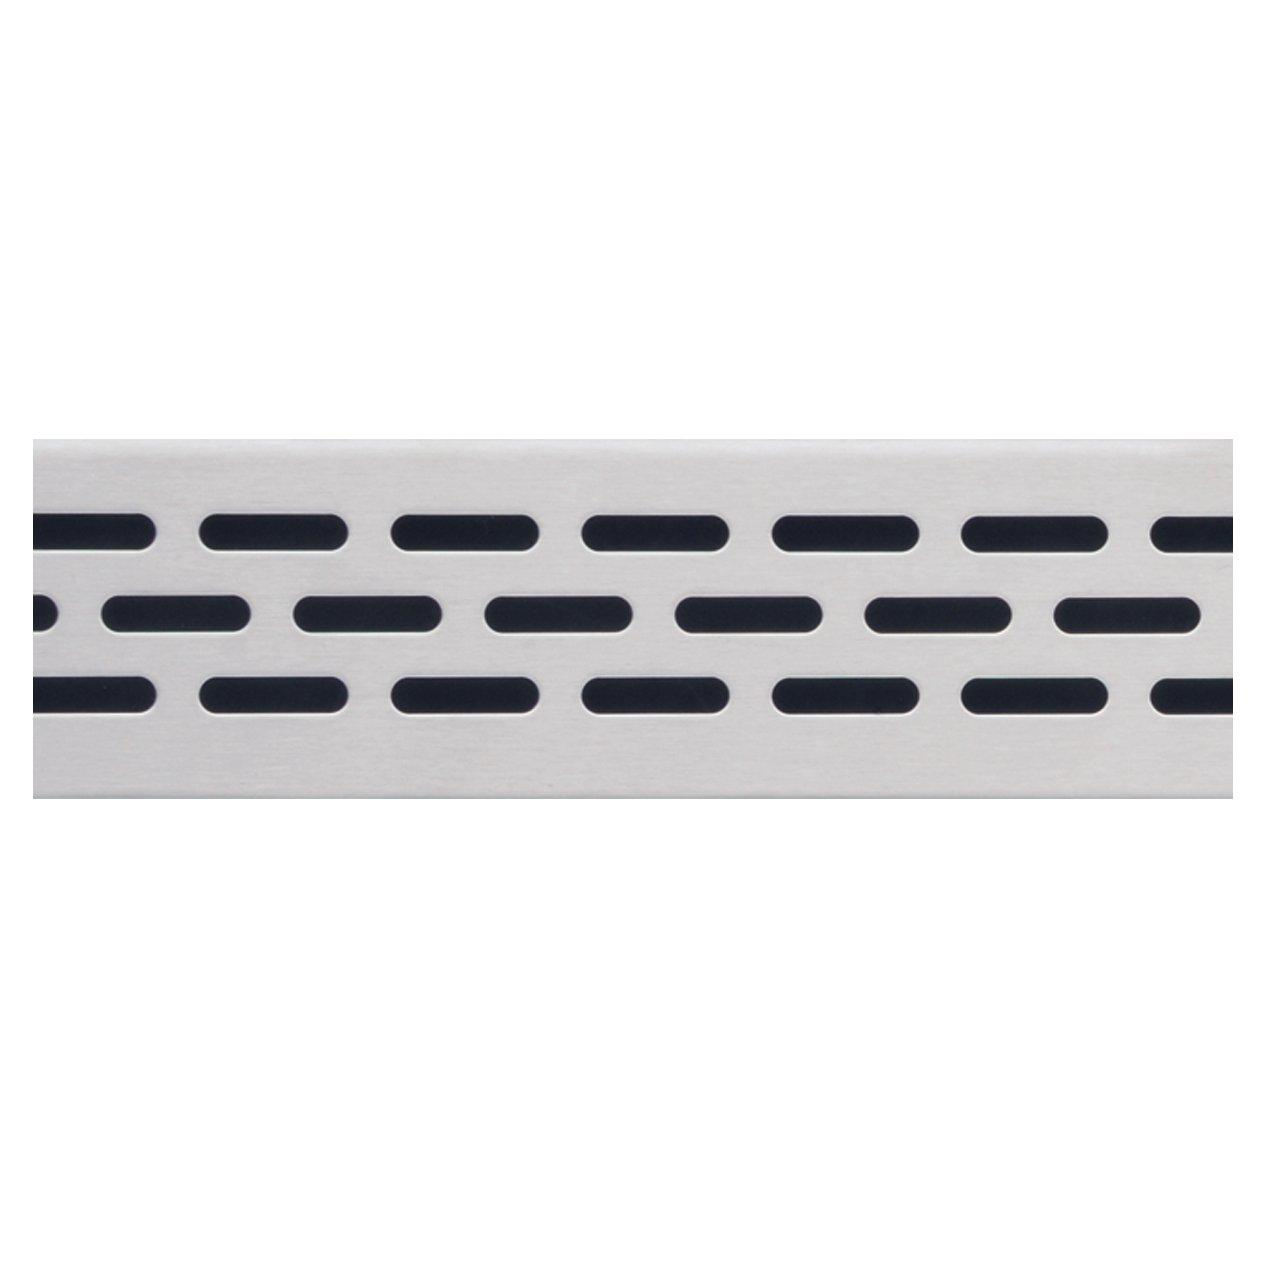 Compotite 24in Oval Design Stainless Steel Linear Drain Grate